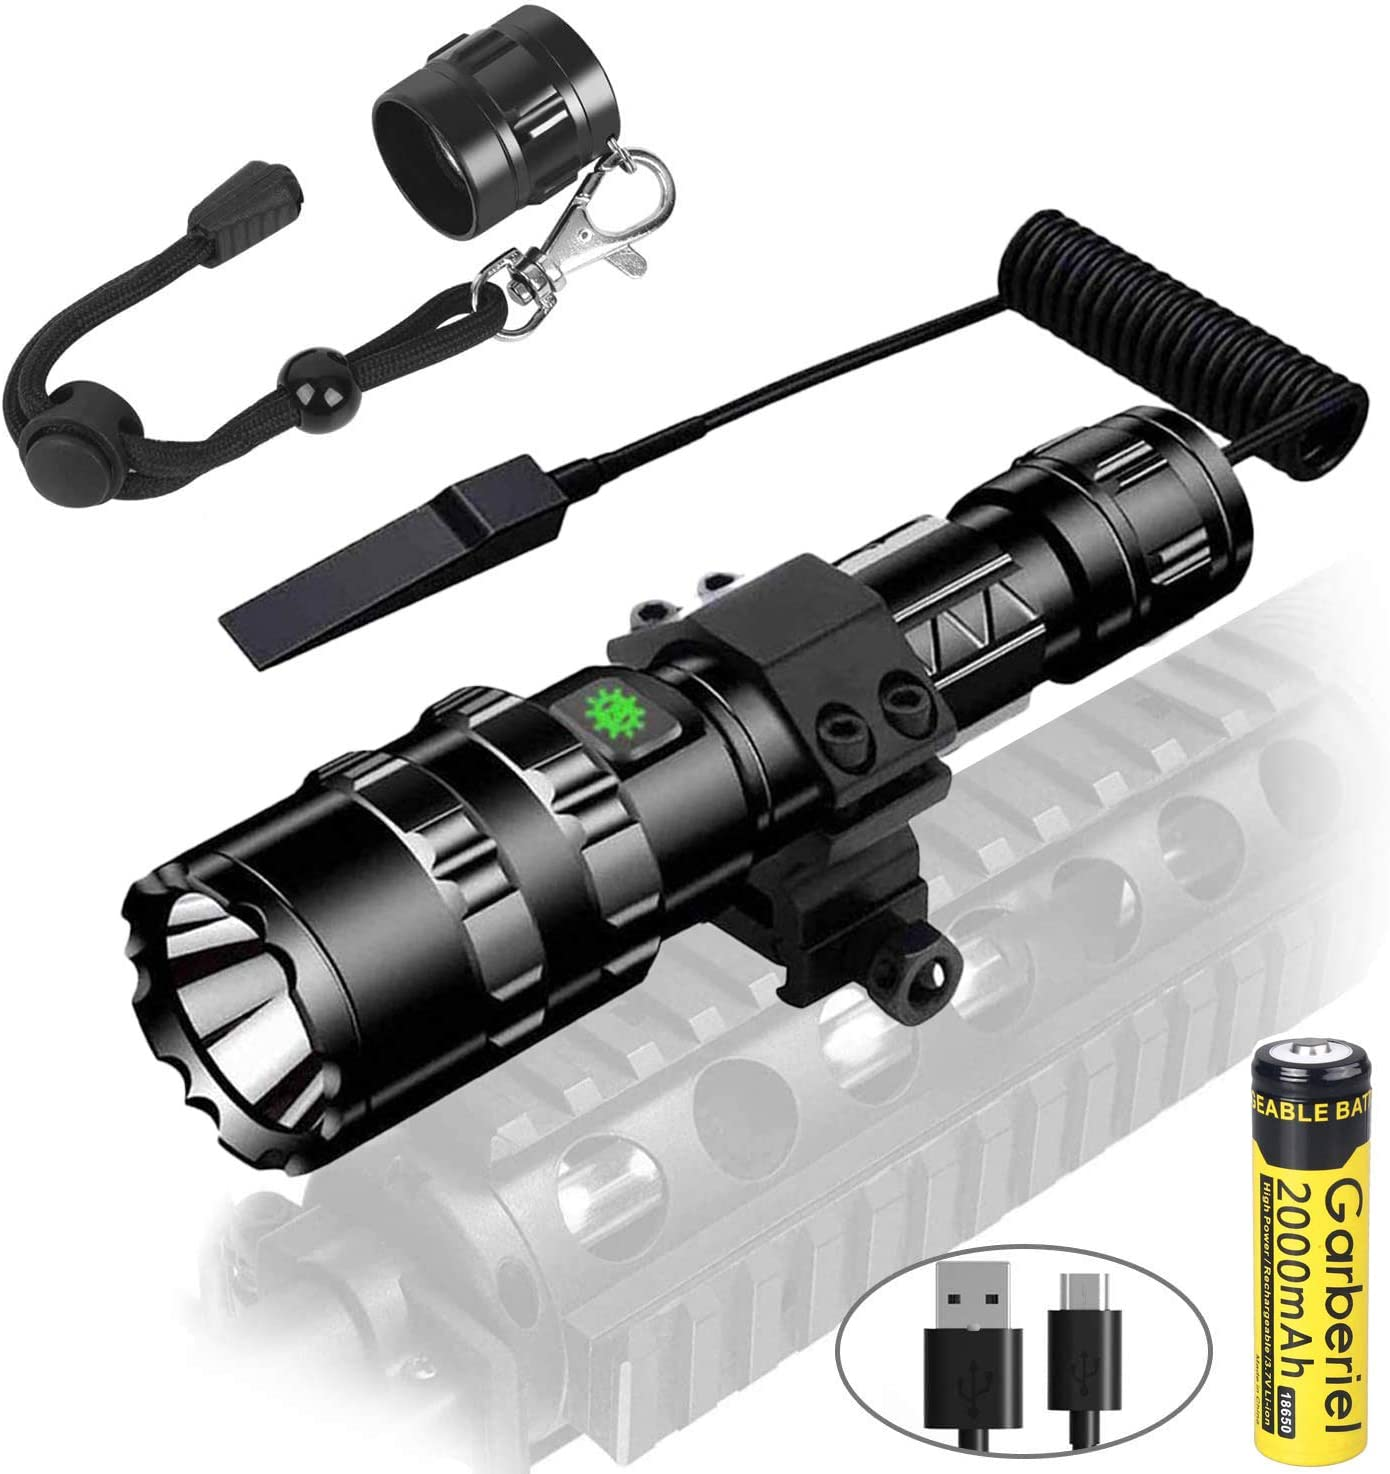 Garberiel 2 in 1 L2 LED Tactical Flashlight with Picatinny Rail Mount - 5 Modes 3000 Lumens Bright Flashlight USB Rechargeable Waterproof Scout Light Torch Hunting Light